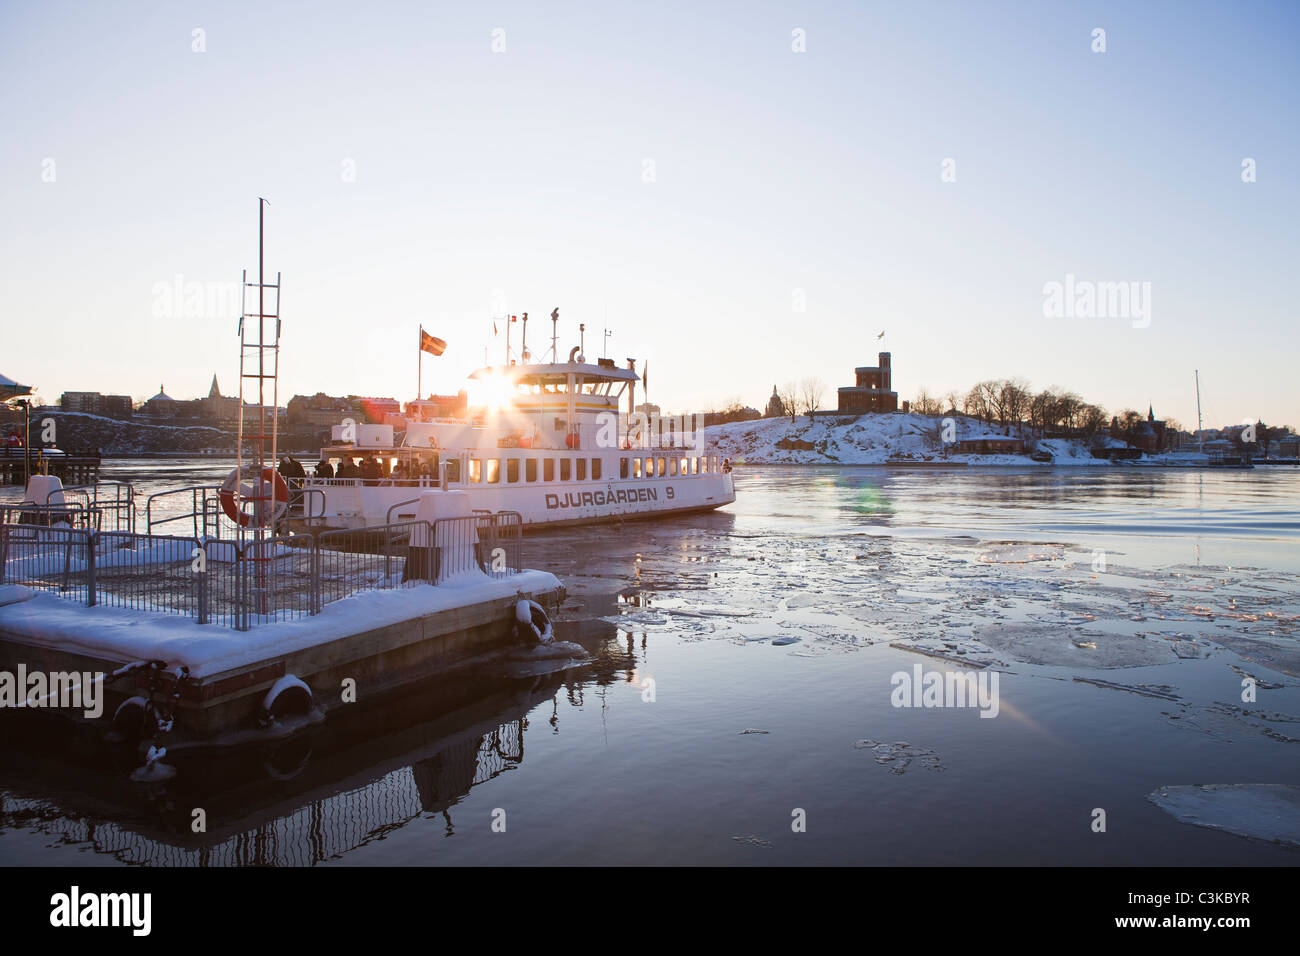 Boat on sea at dusk - Stock Image